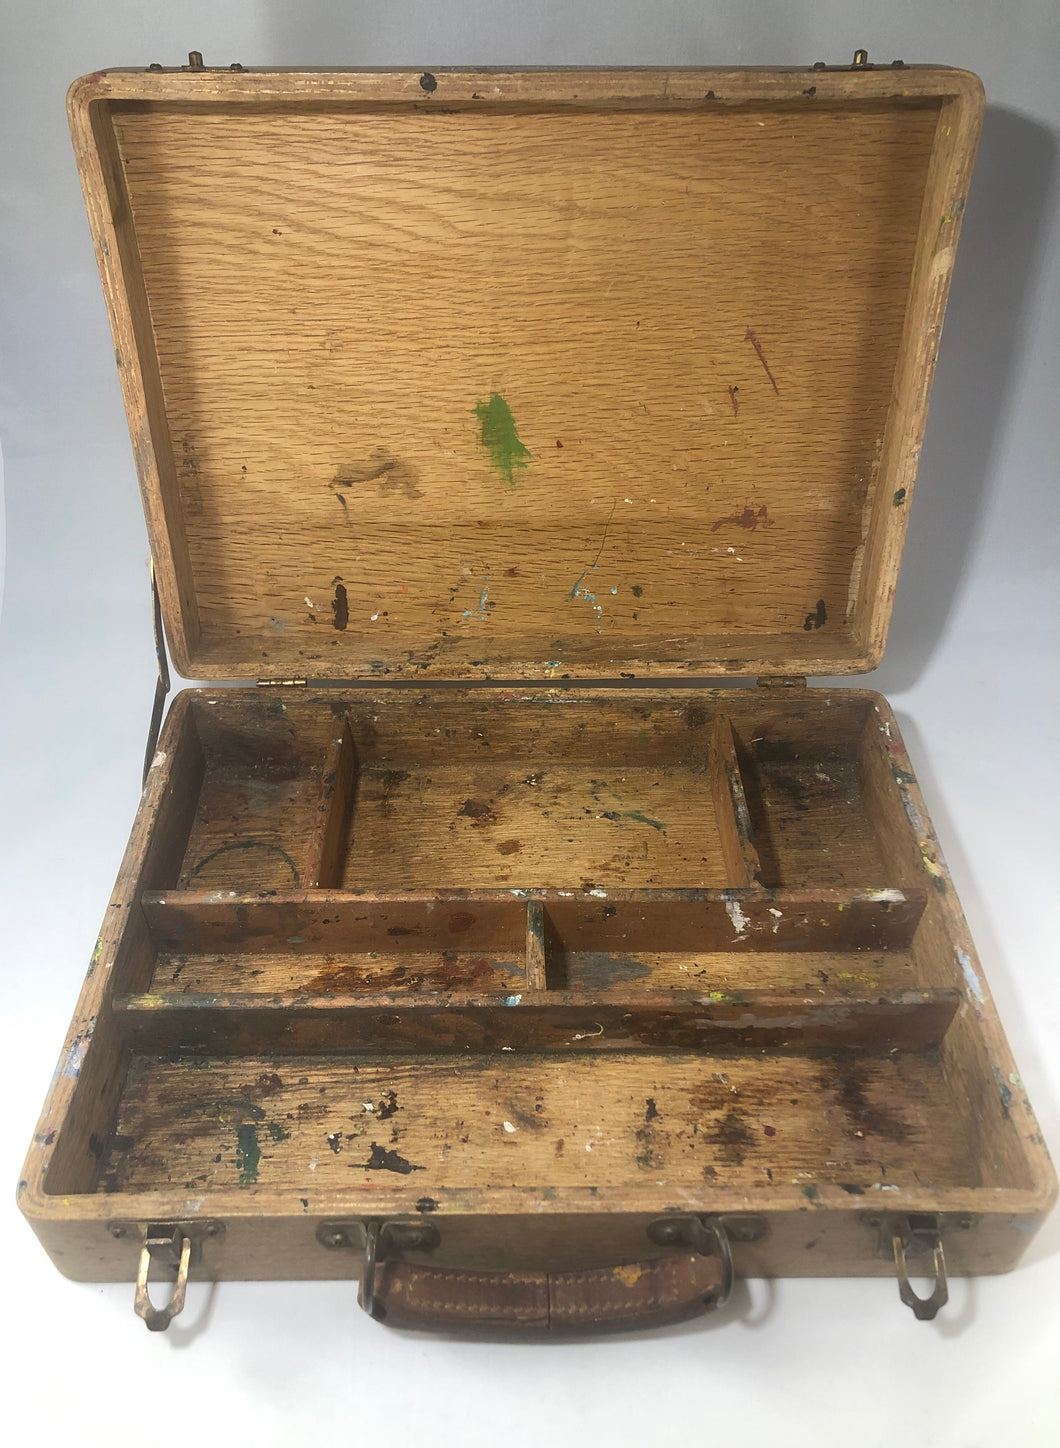 Vintage Plein Air Art Case